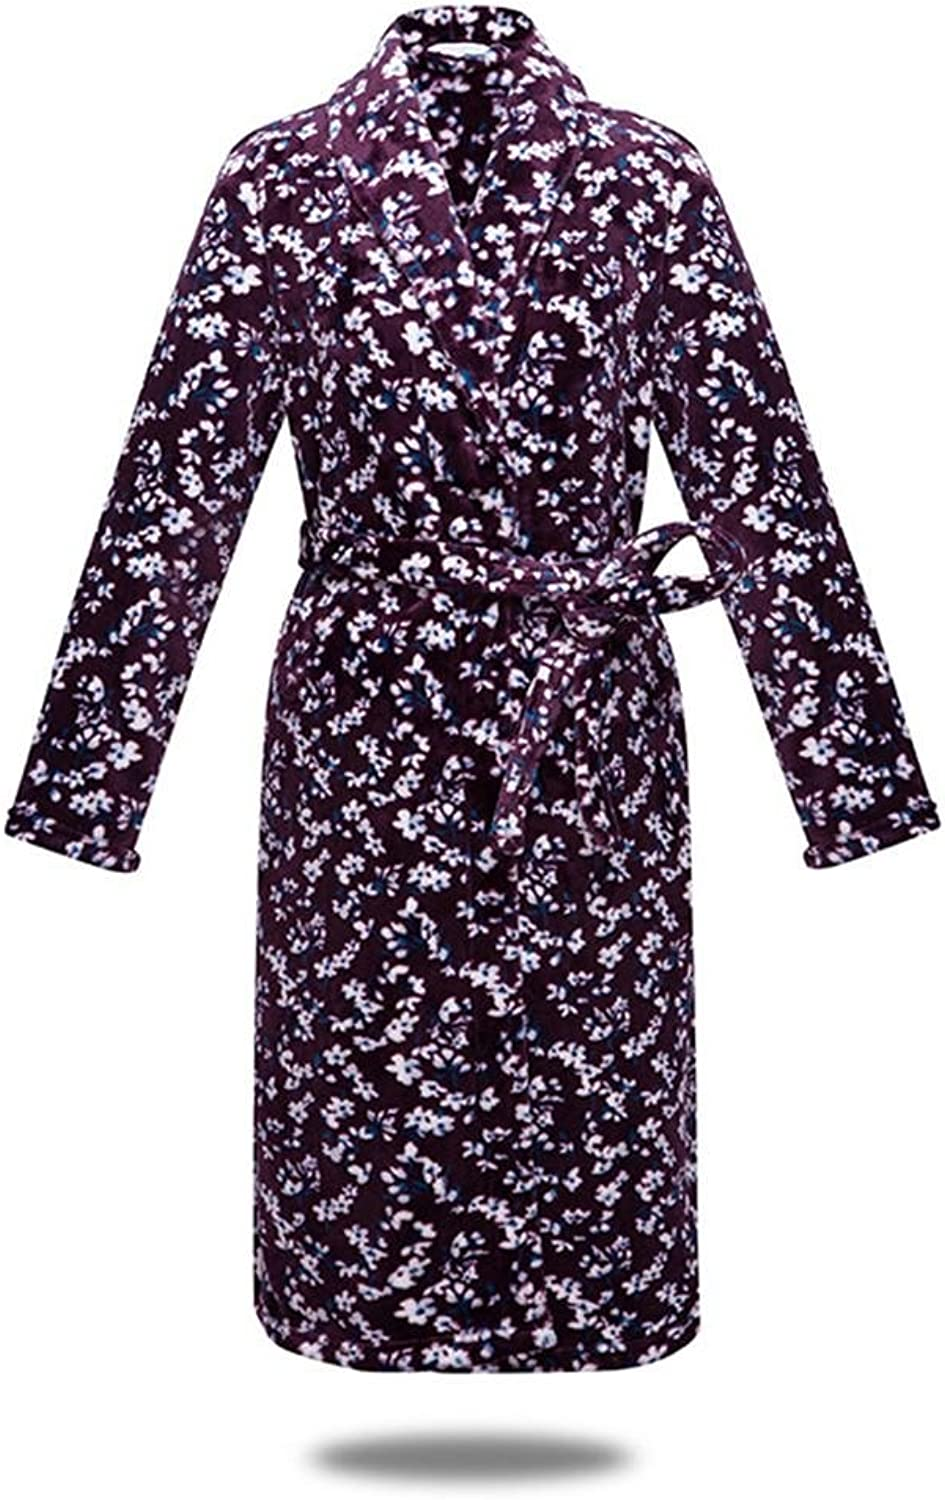 DMMSS Women Flannel Bathrobes Thicker Section Nightgown Home Clothing Pajamas